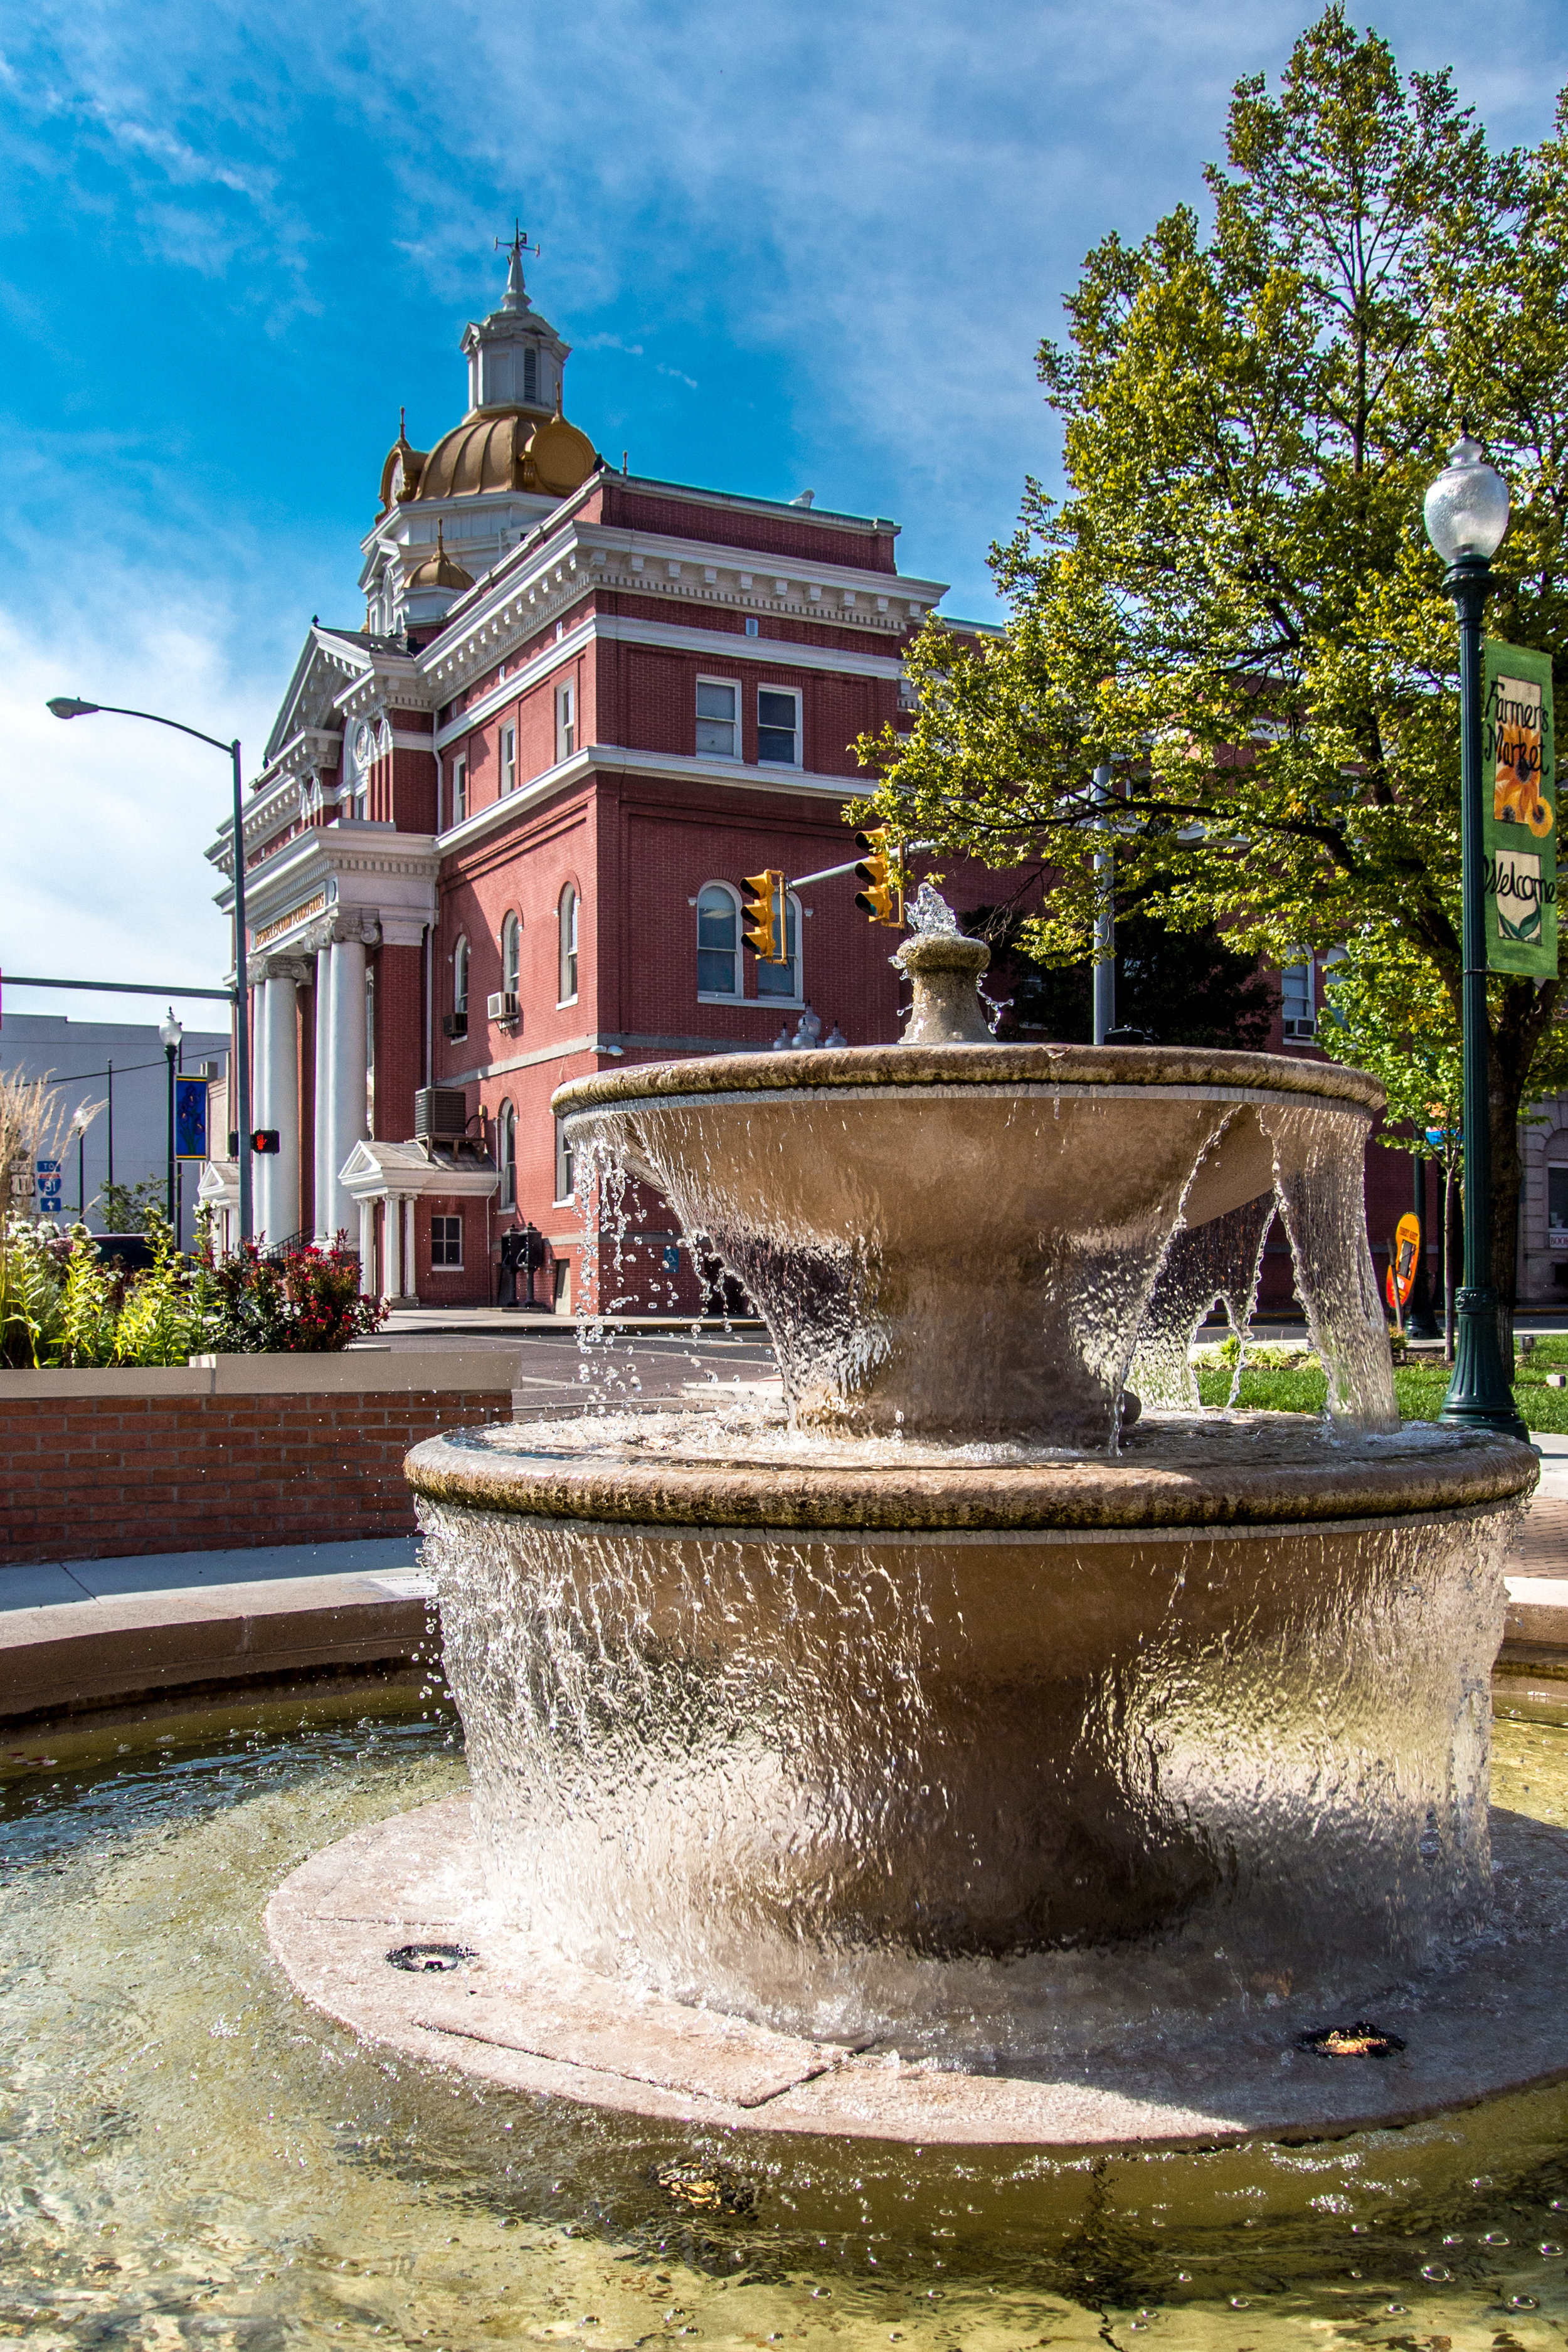 Martinsburg Town Square